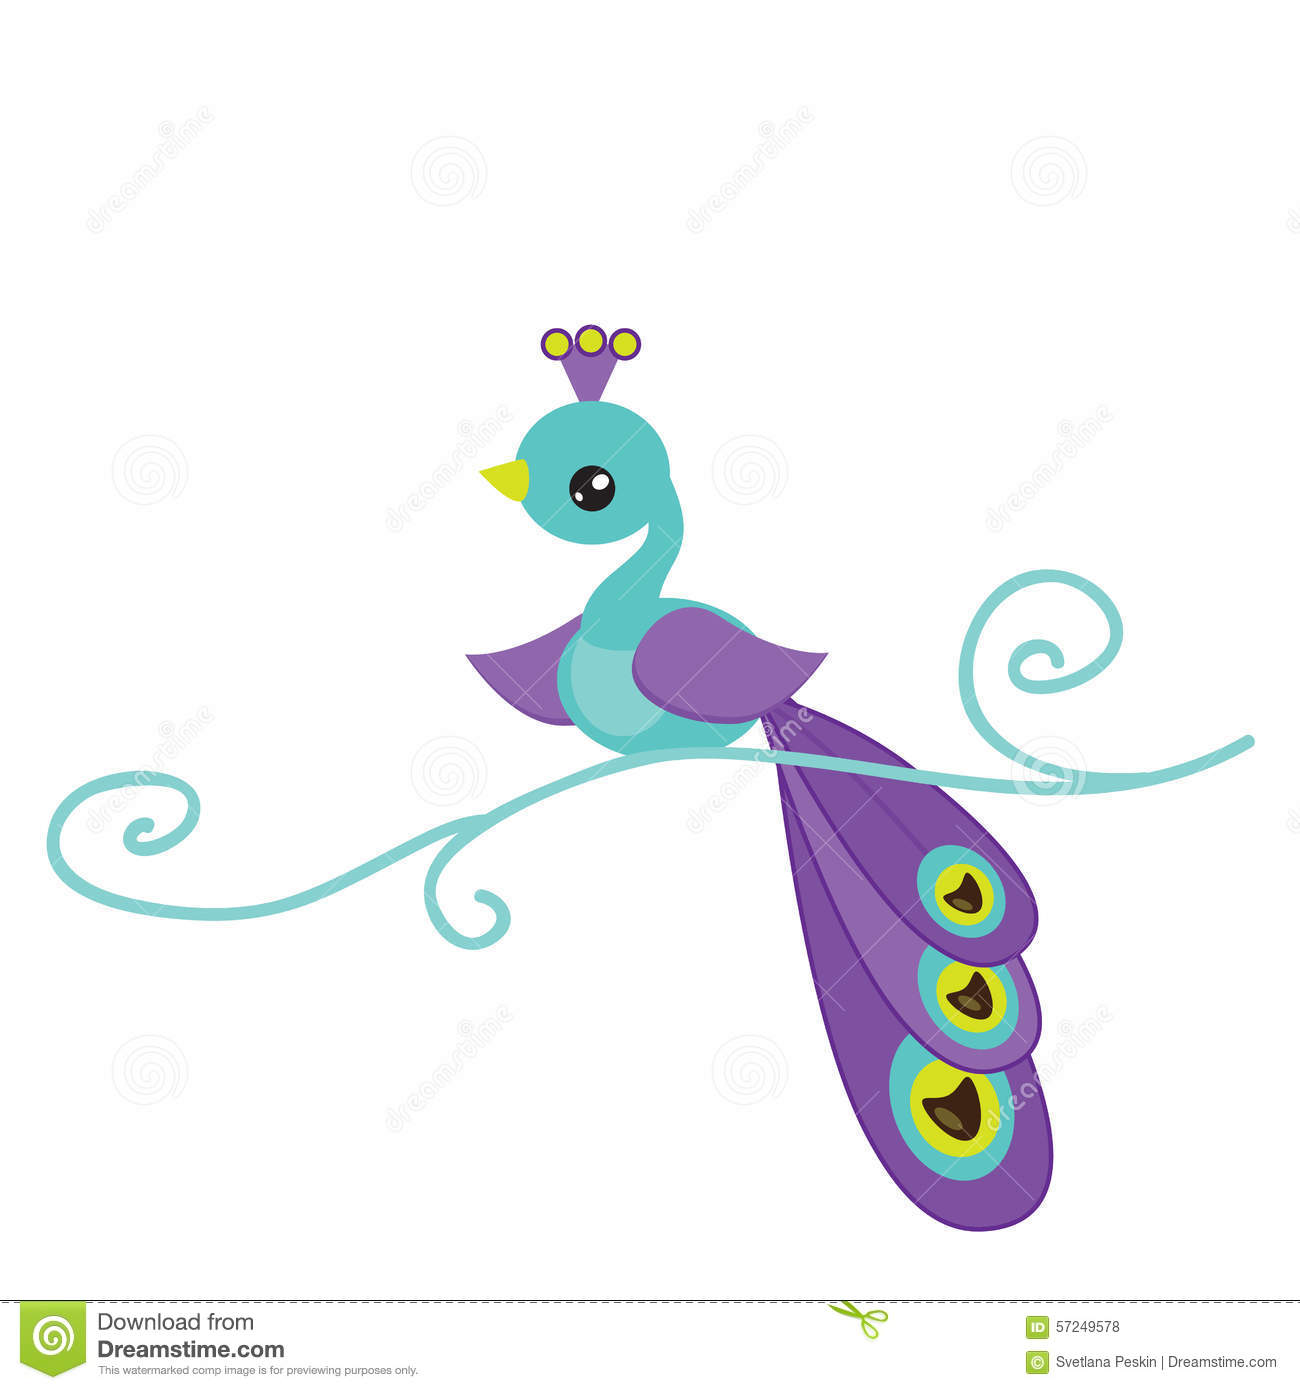 Cute peacock illustration stock vector. Image of funny ...